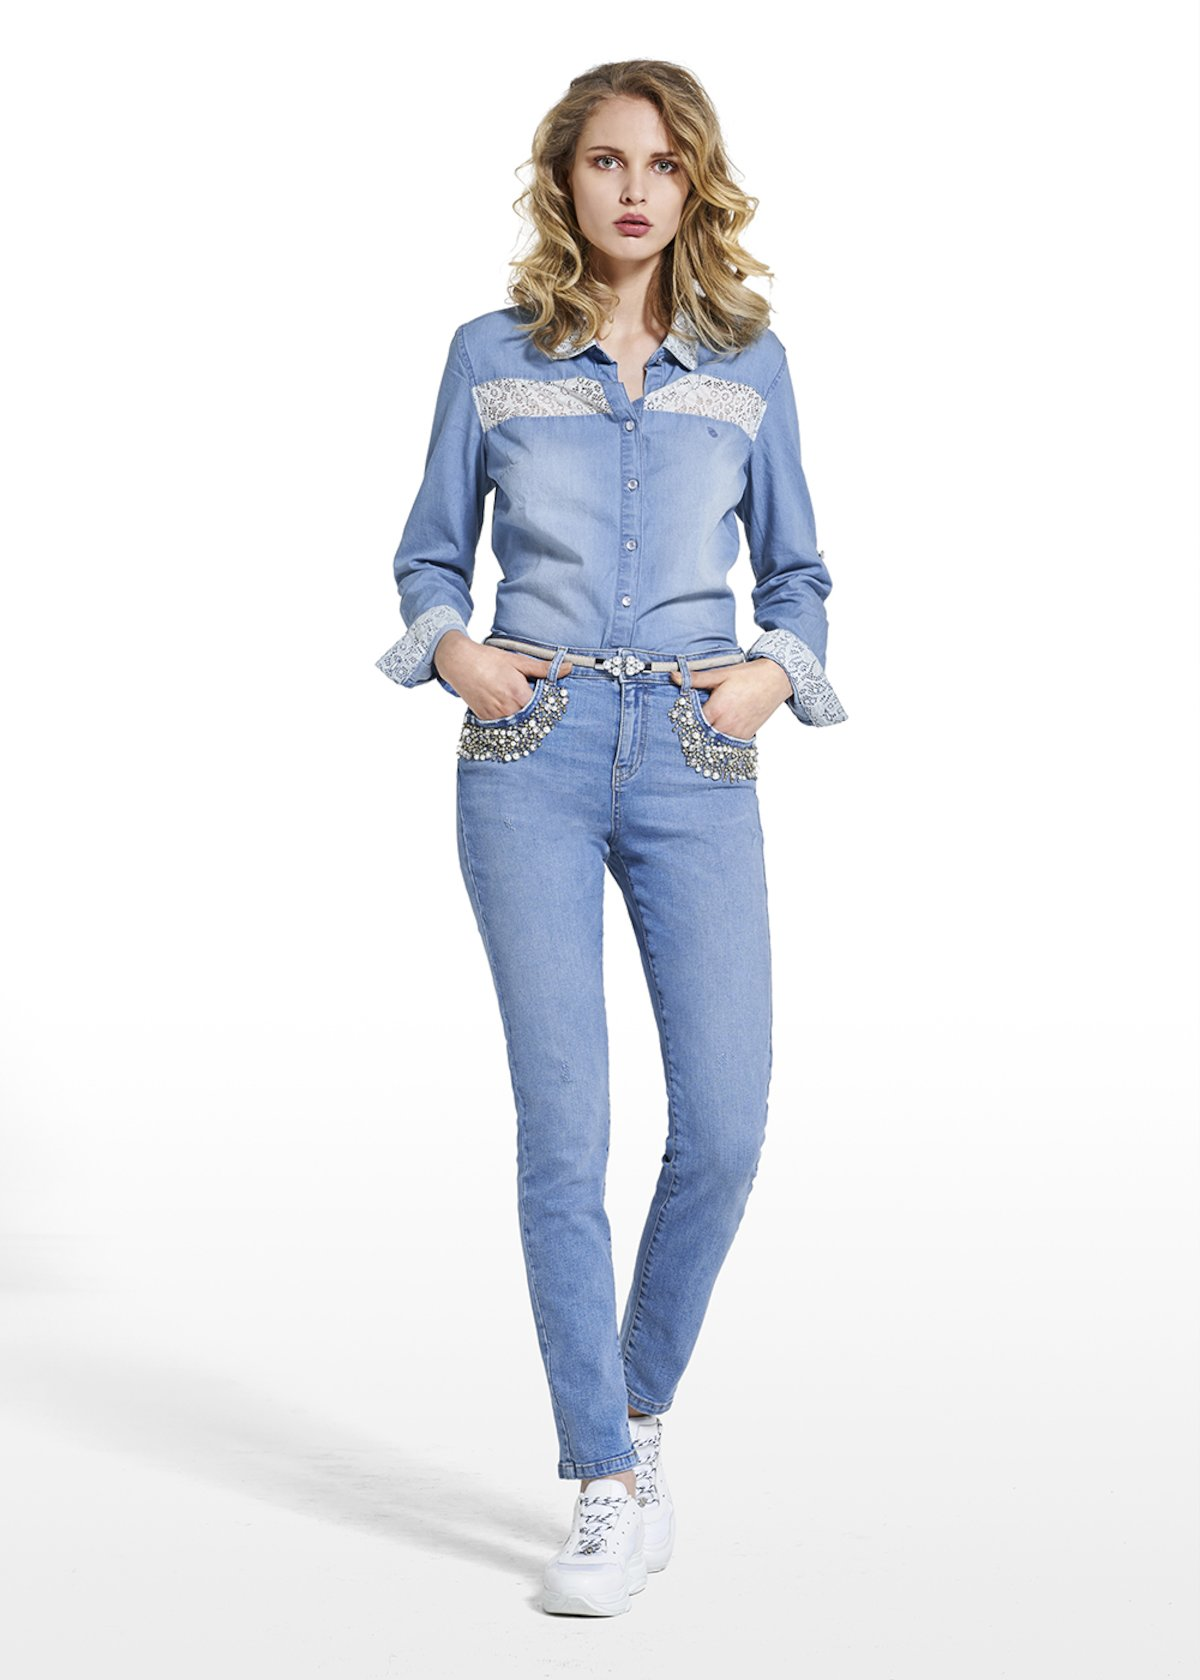 Jeans Dexter 5-pocket with beaded detail and crystal rhinestones - Denim - Woman